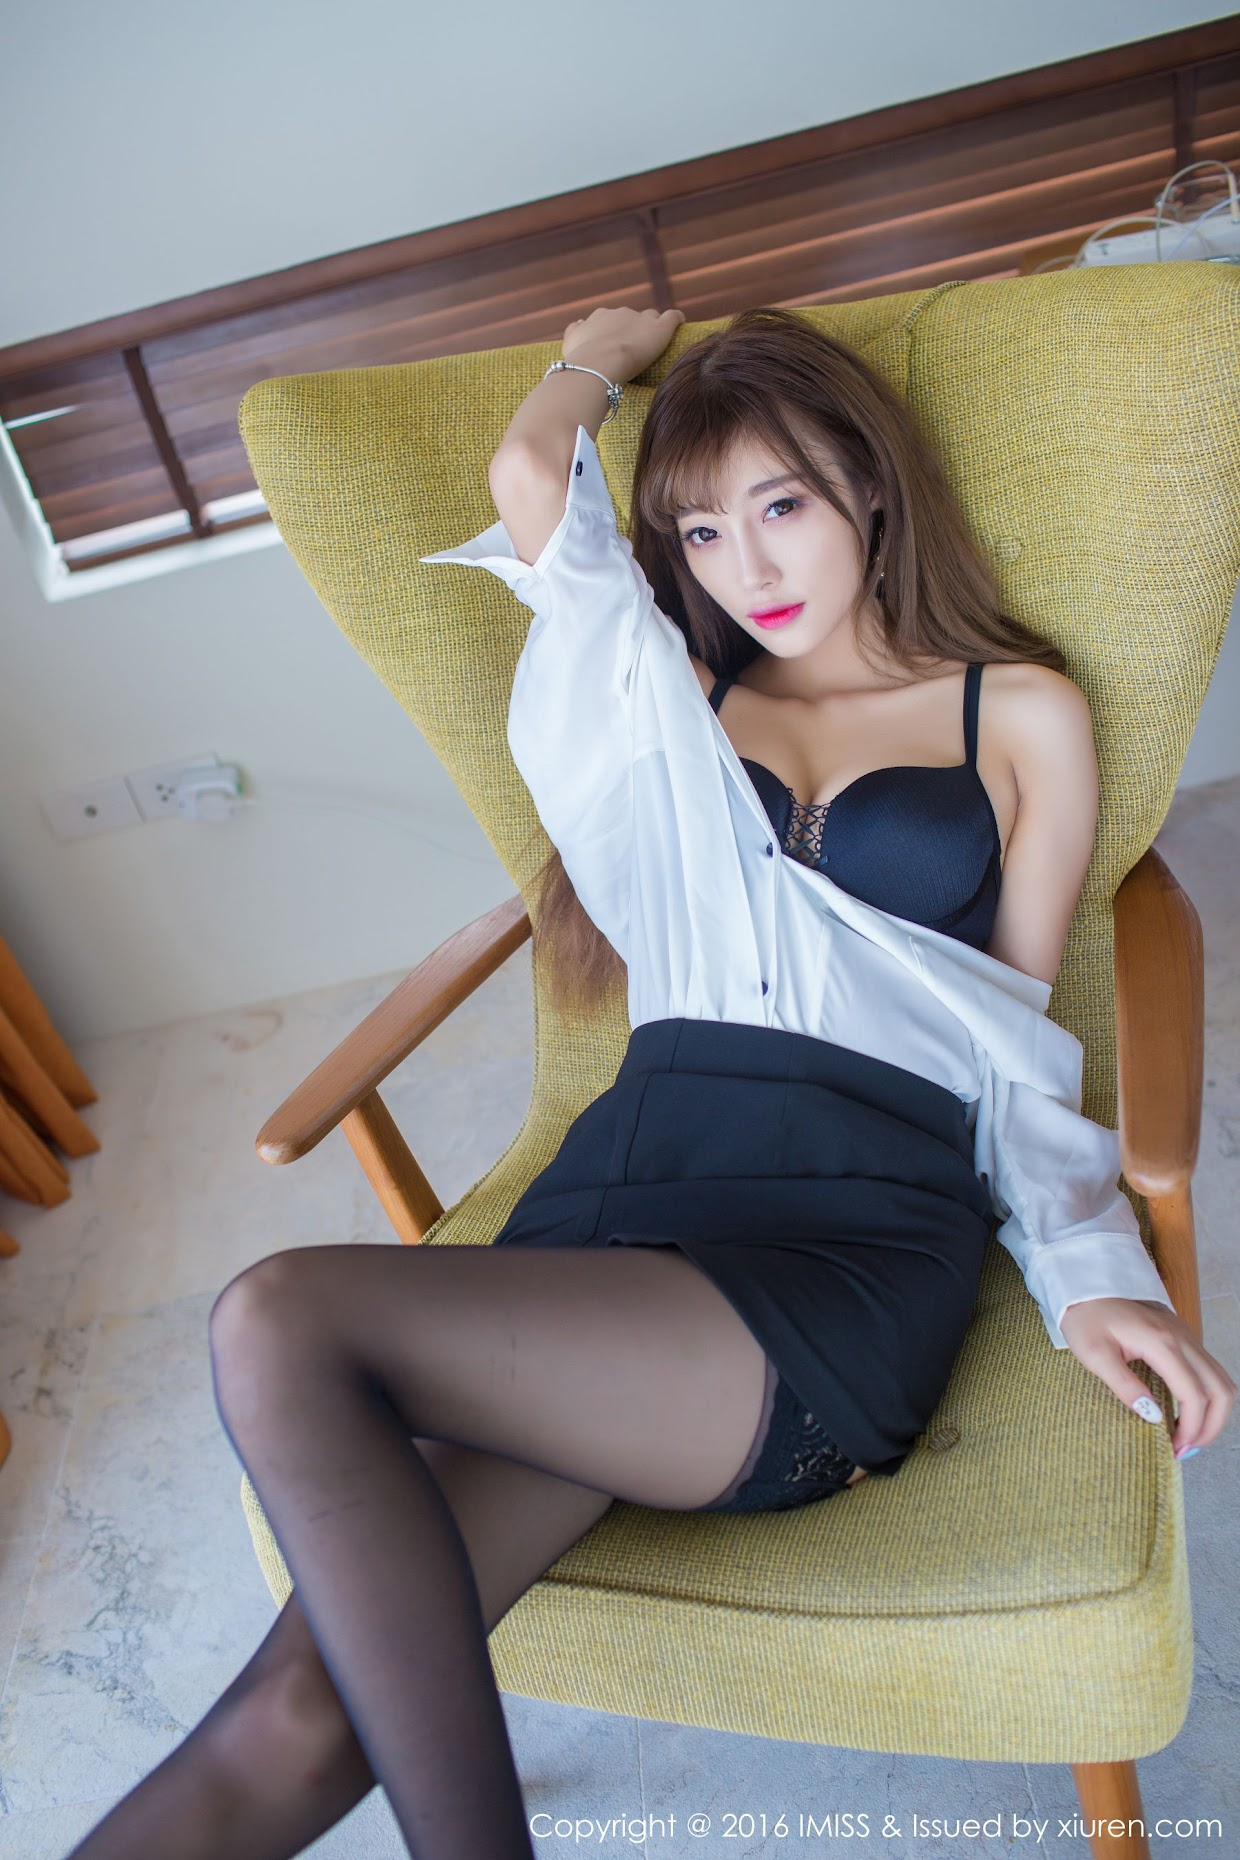 Imiss Vol 140 Sugar Ol Lolita - Asigirl.com - Download free high quality sexy stunning asian pictures